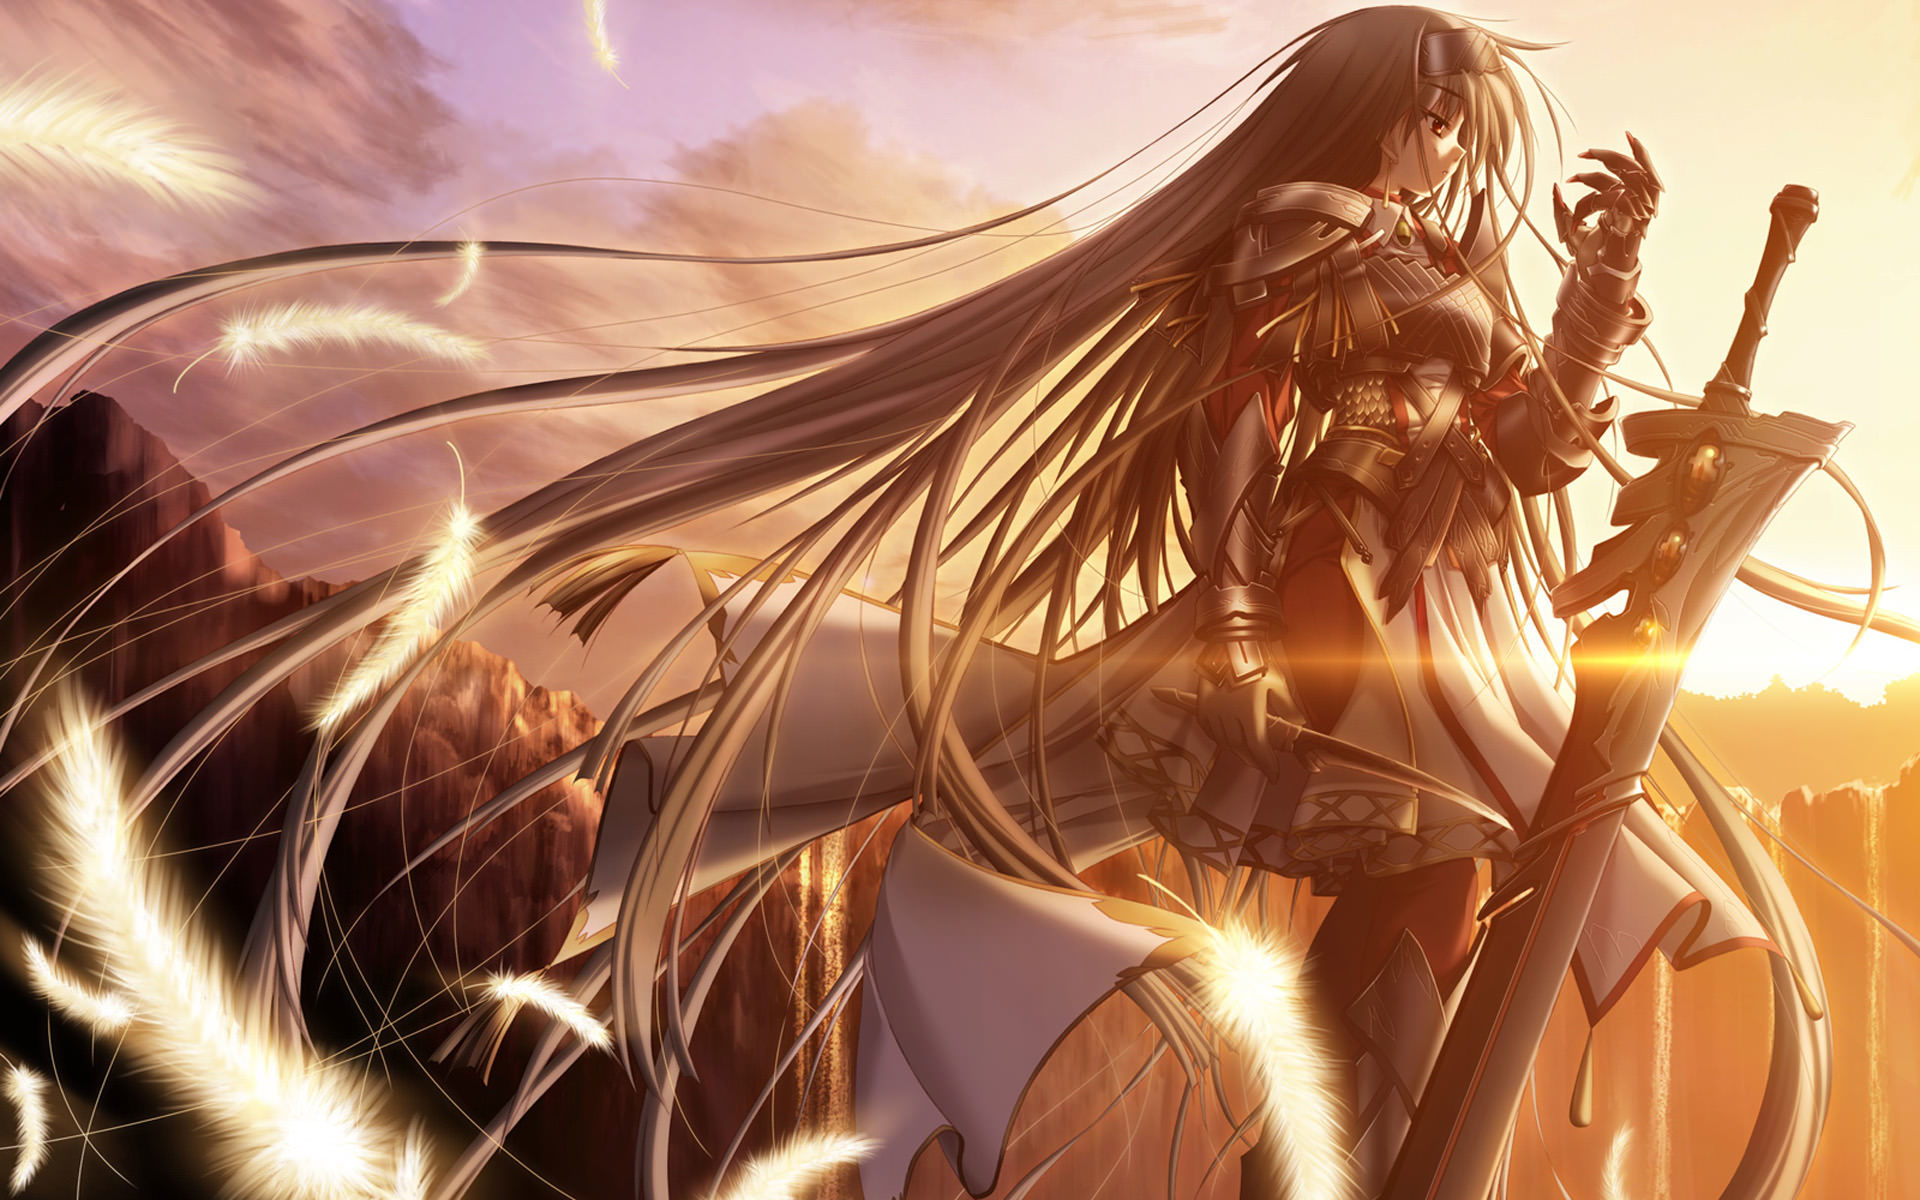 Anime Girl Warrior Wallpaper Hd